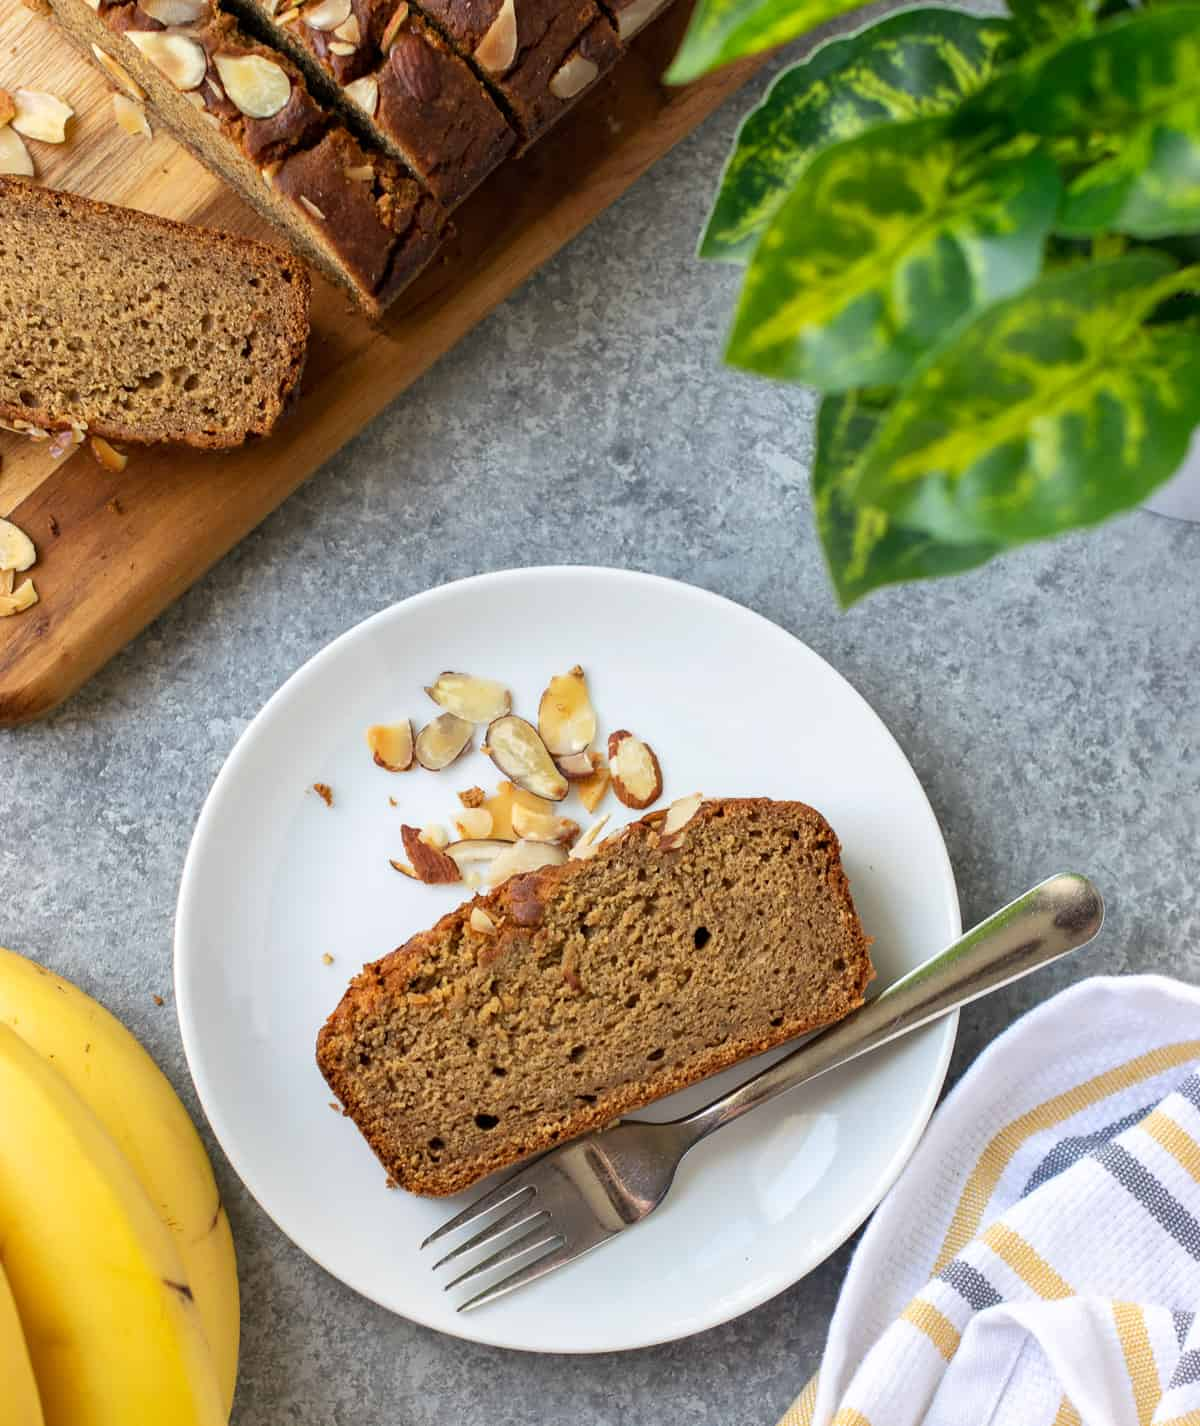 A slice of healthy vegan banana bread on a white plate